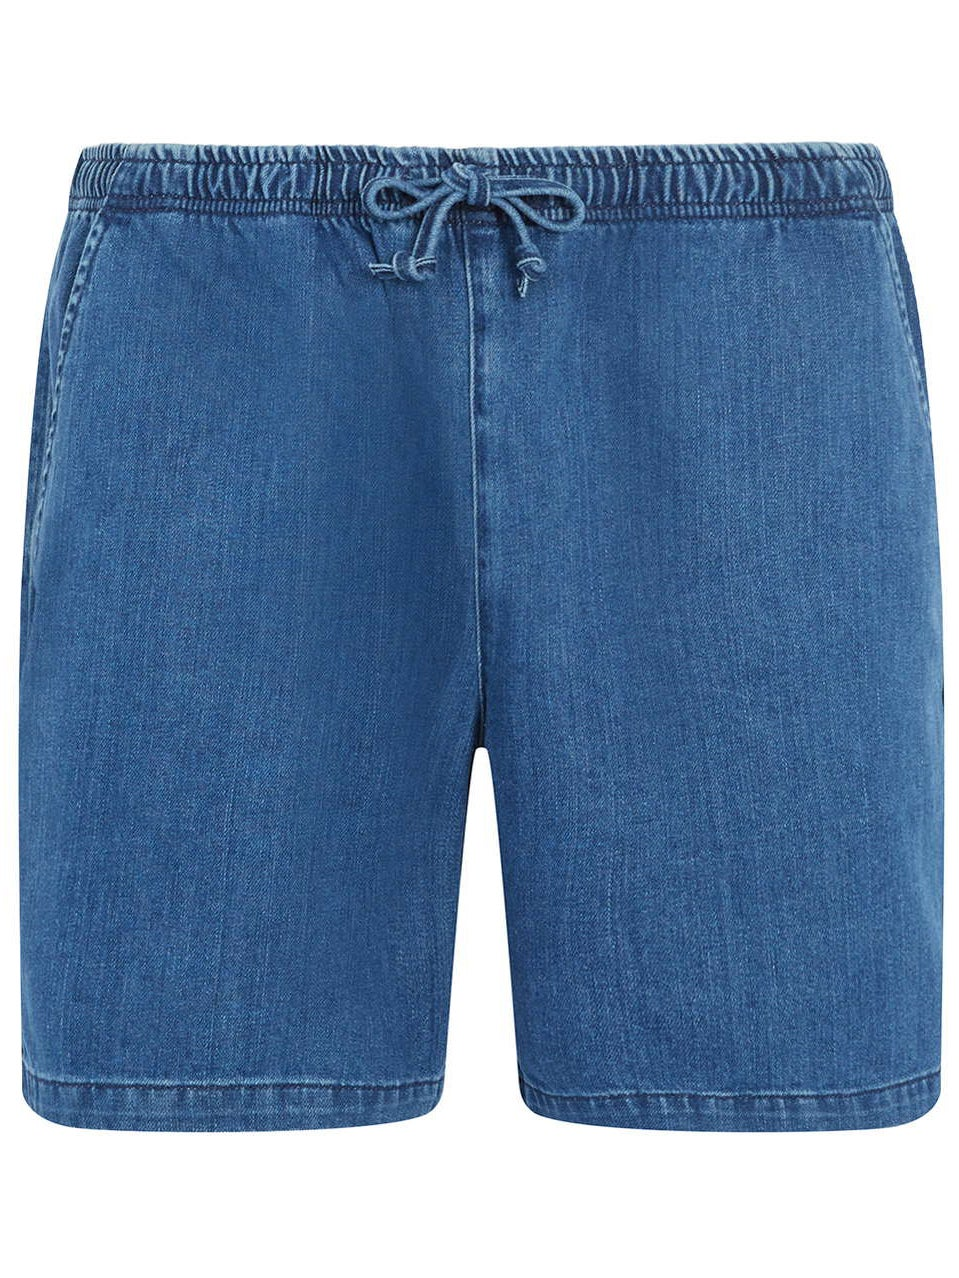 3fa14f25df4fb3 Think of a pair of swim shorts, but in timeless blue denim. These are a  relaxed fit and have an elasticated waistband with drawstring fastening, ...